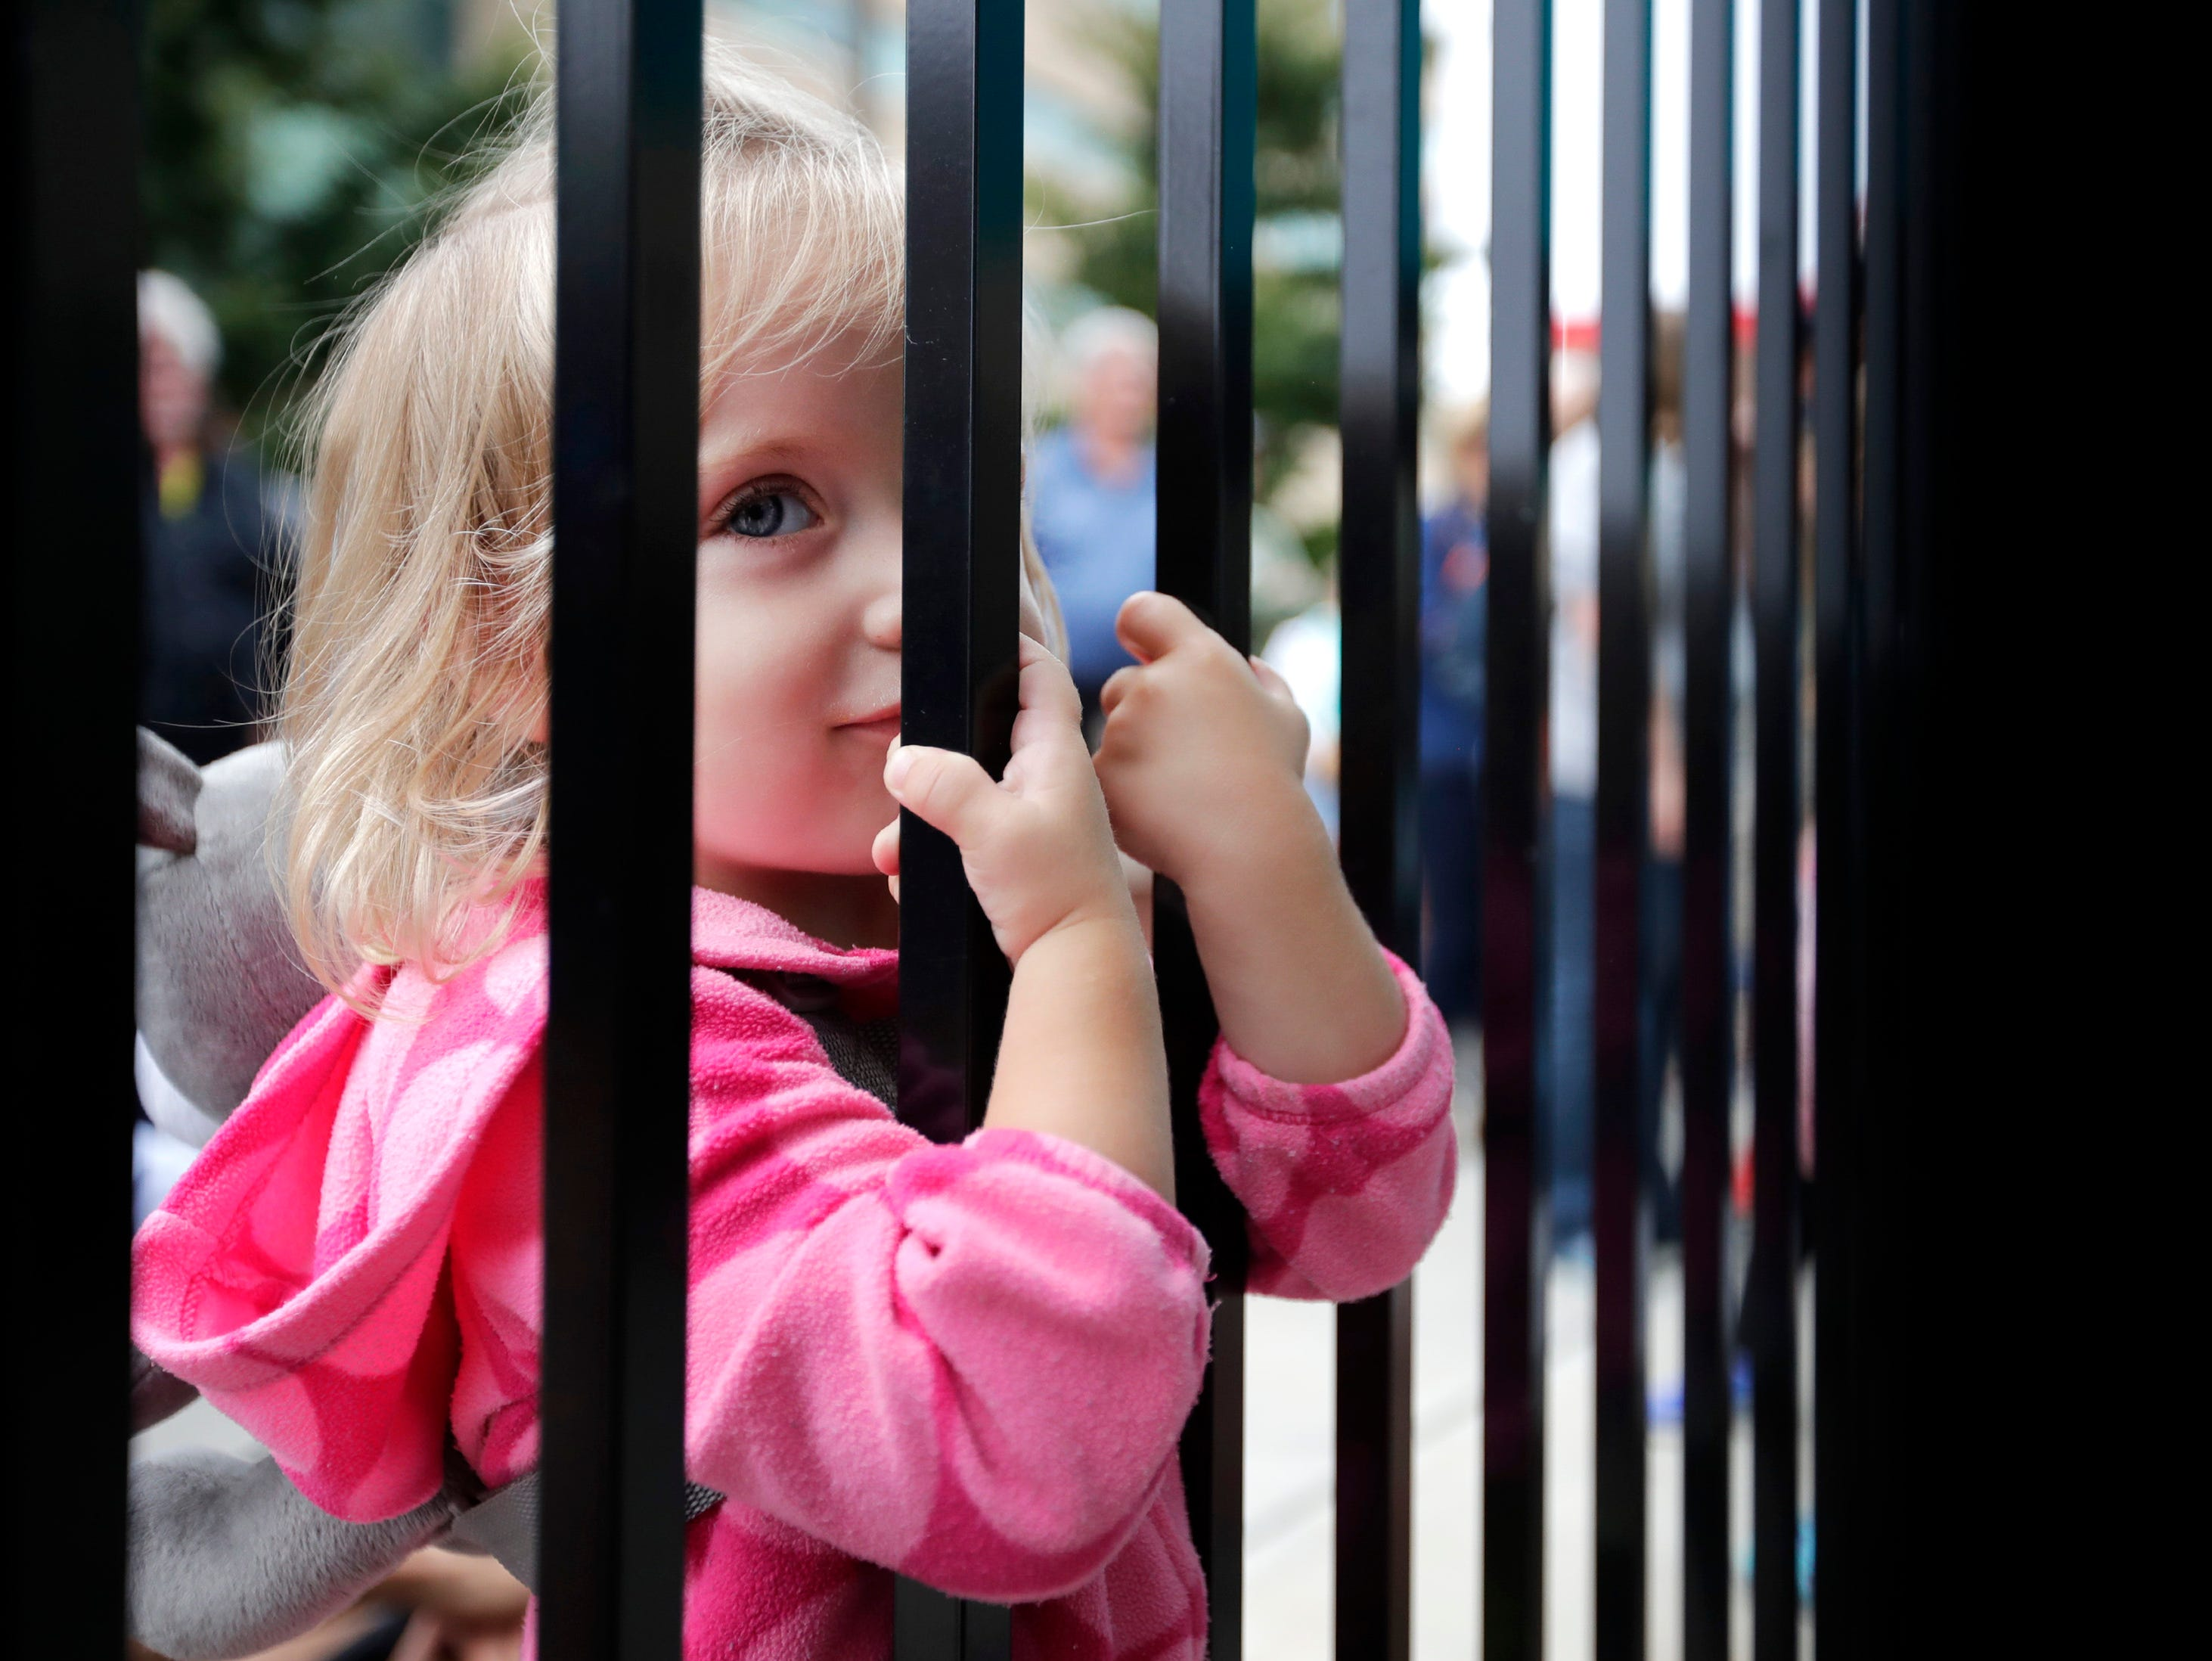 Isabella Beck, 2, of Kaukauna, watches Mira Goto perform on the Bazil's Pub Patio through the fence during the first day of Mile of Music Thursday, Aug. 2, 2018, in Appleton, Wis.Danny Damiani/USA TODAY NETWORK-Wisconsin